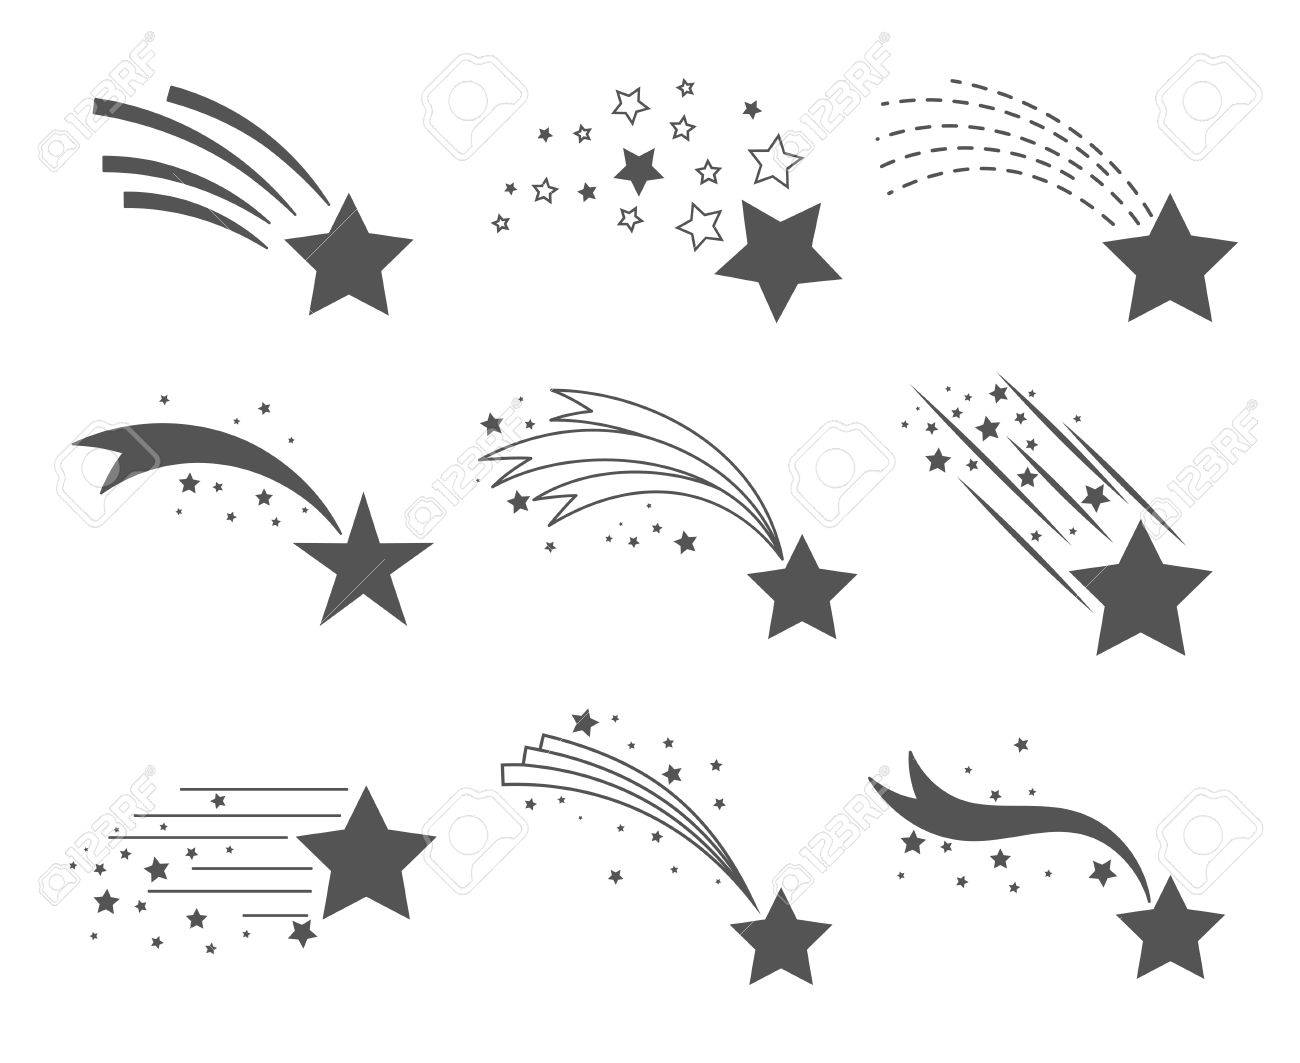 Shooting stars icons. Comet tail or star trail vector set isolated on white background. Stardust falling simple meteorites - 76597330